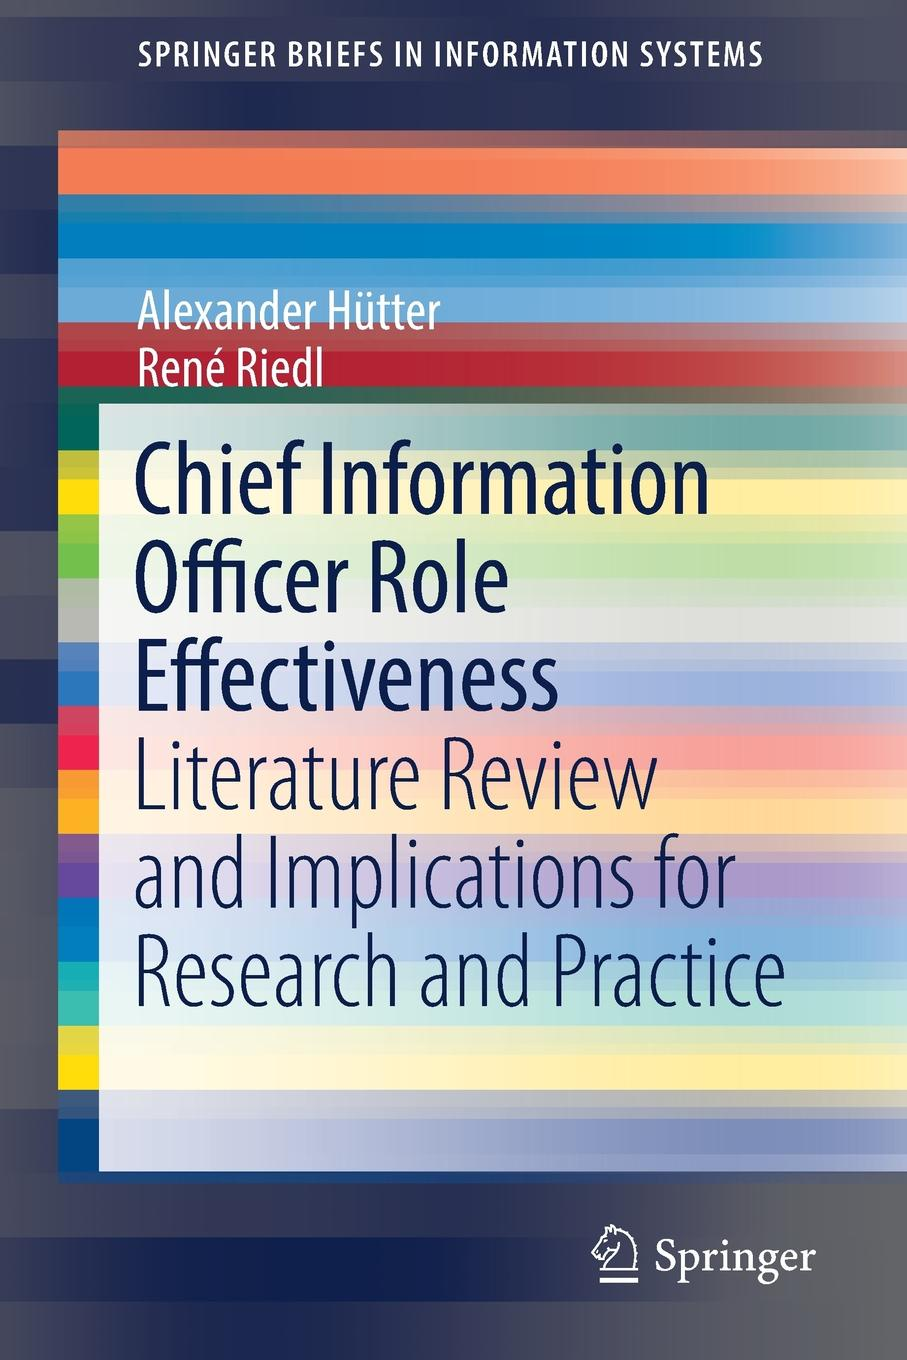 Alexander Hütter, René Riedl Chief Information Officer Role Effectiveness. Literature Review and Implications for Research and Practice dean lane the chief information officer s body of knowledge people process and technology